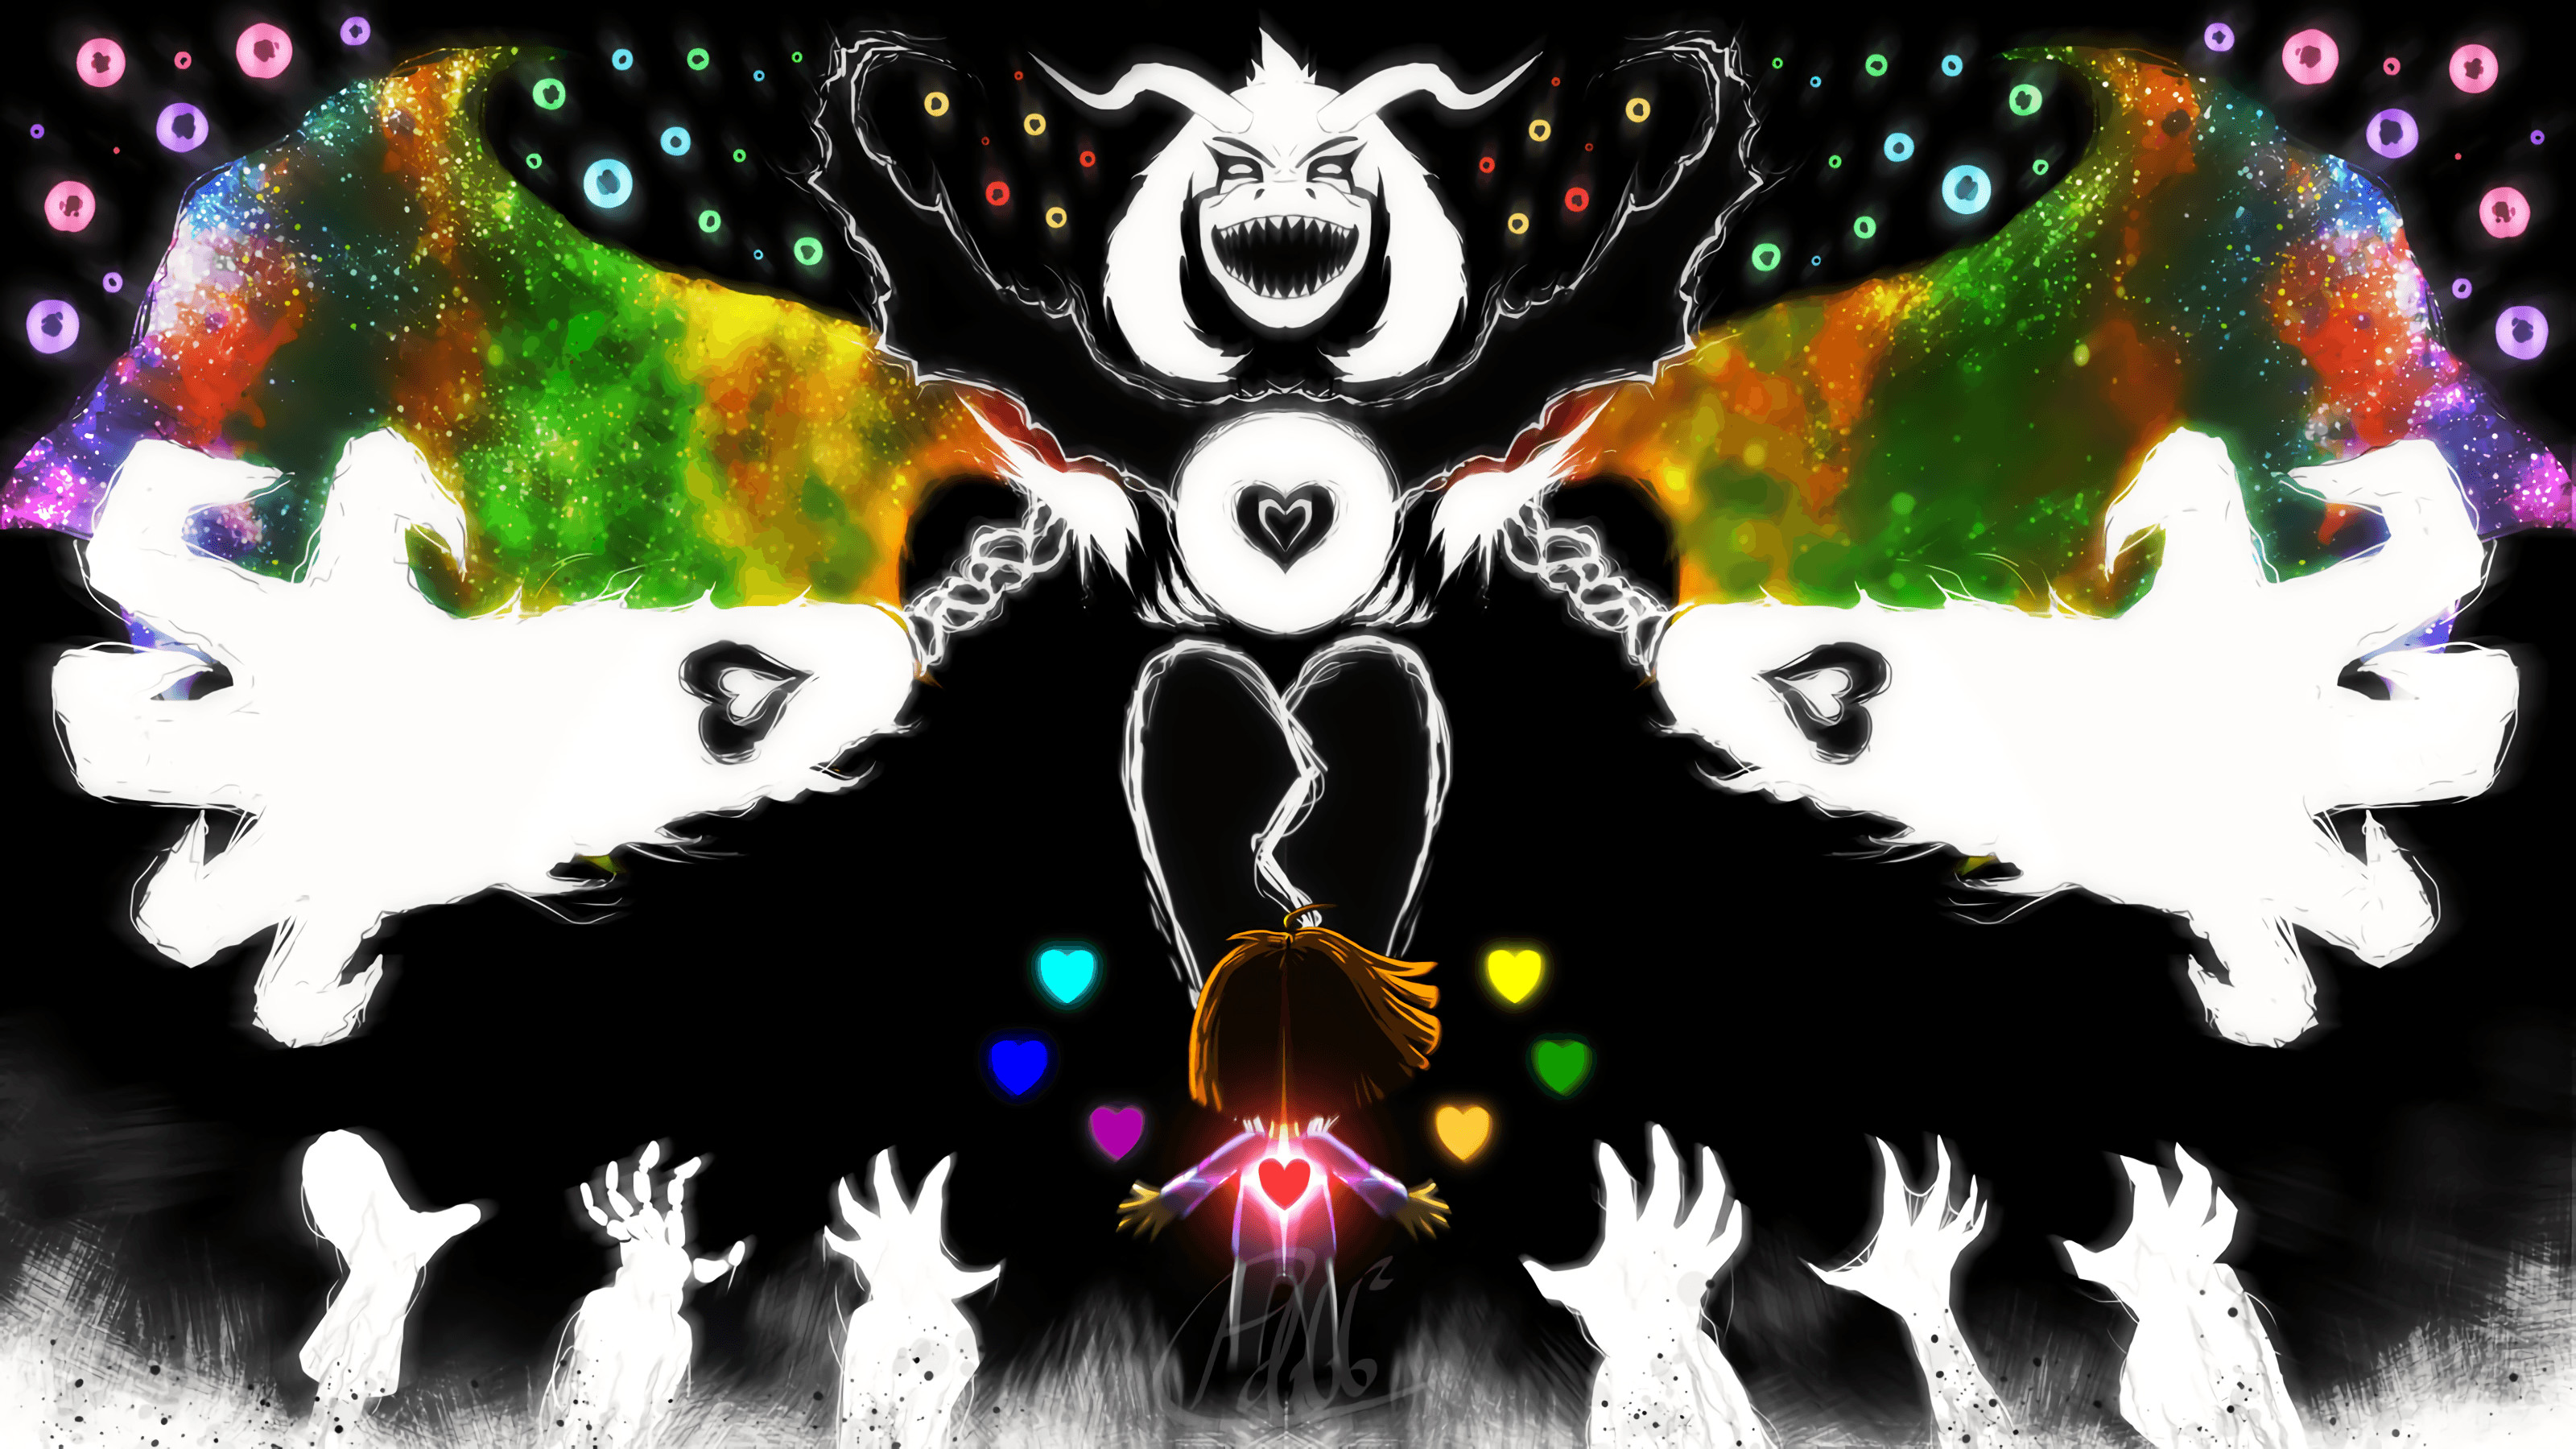 84 Undertale HD Wallpapers   Backgrounds – Wallpaper Abyss